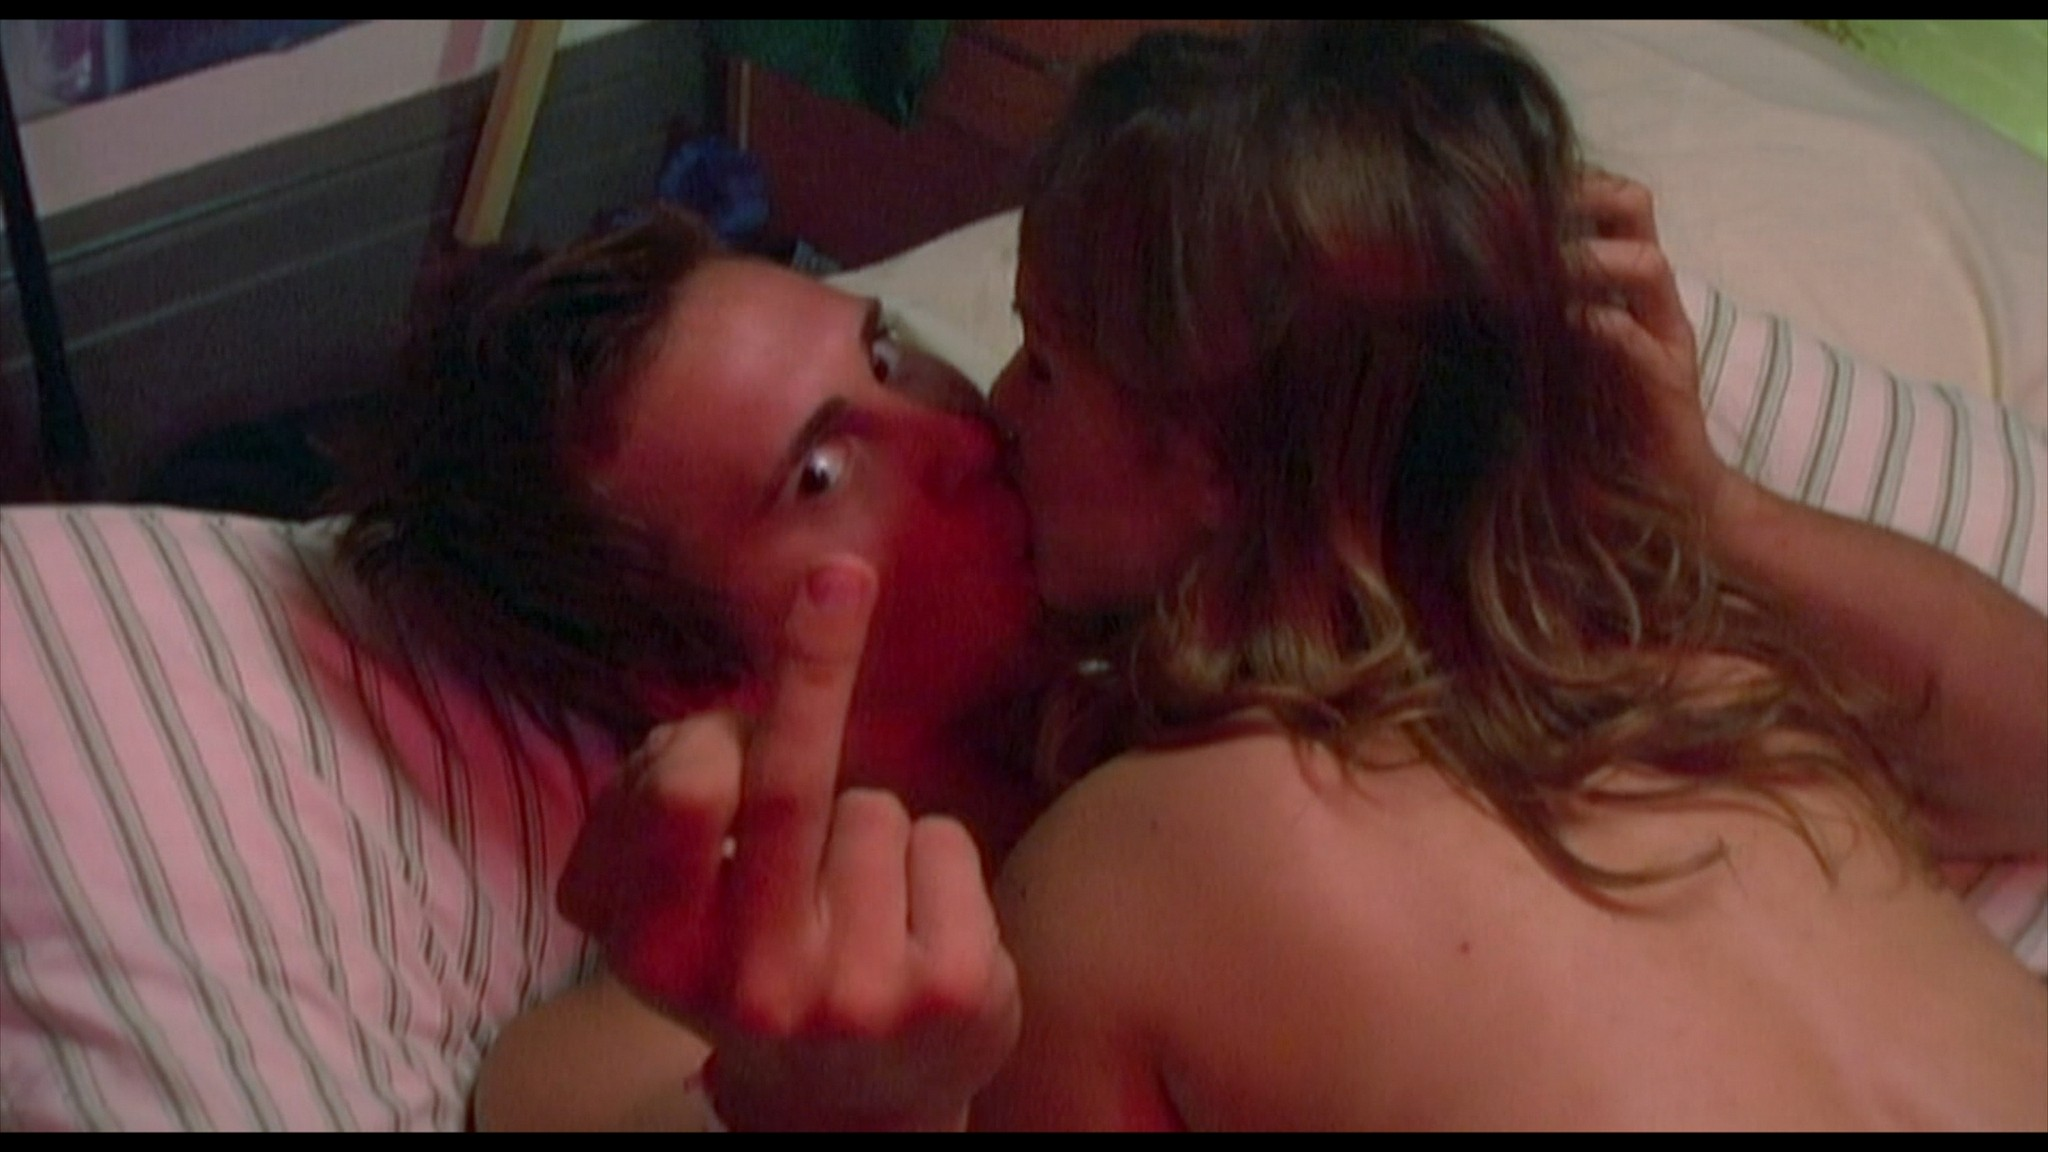 Candace Kroslak nude Michelle Cormier and others nude - American Pie Presents The Naked Mile (2006) HD 1080p BluRay (2)